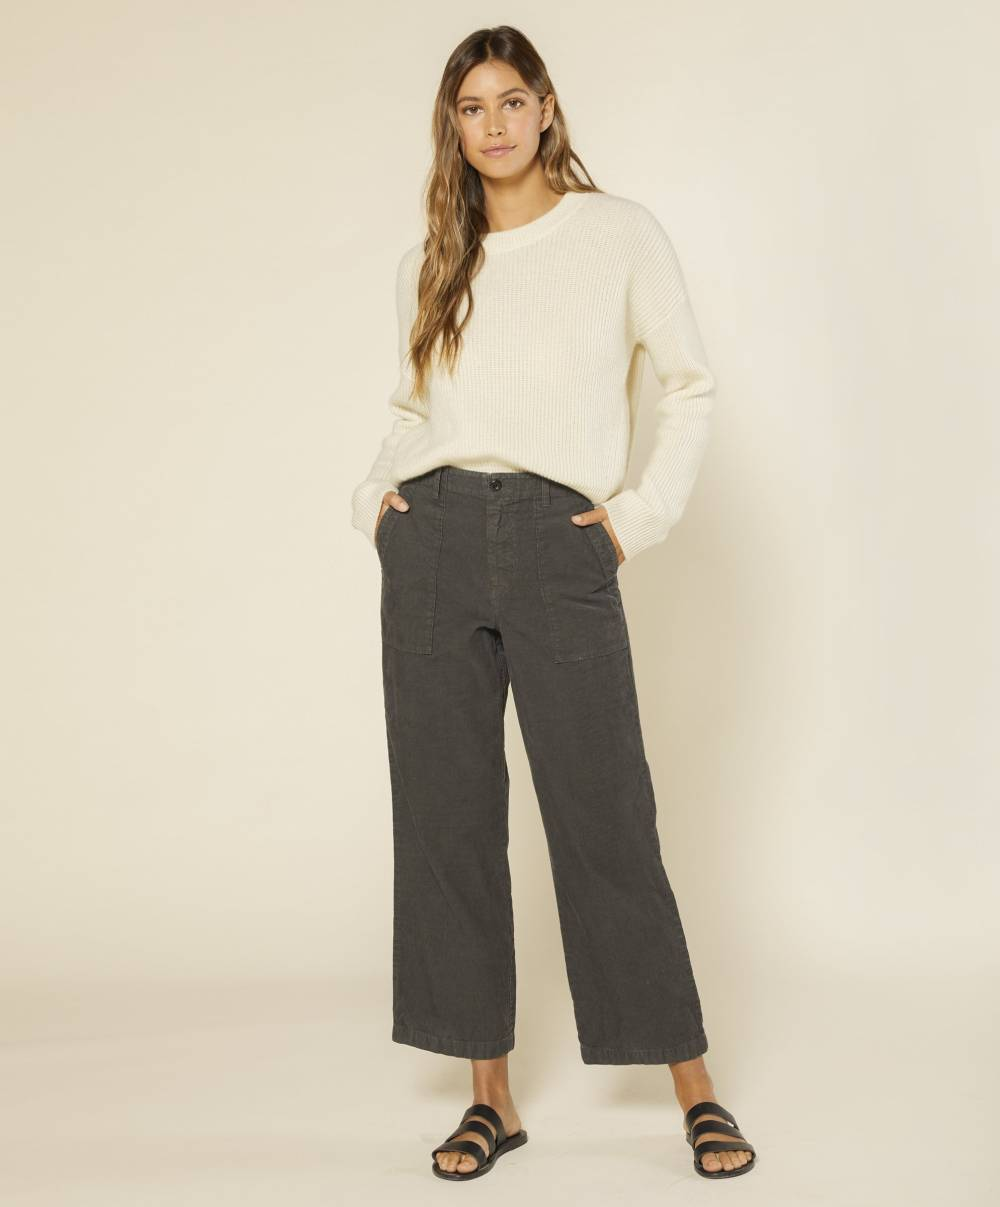 outerknown casual chic work pants